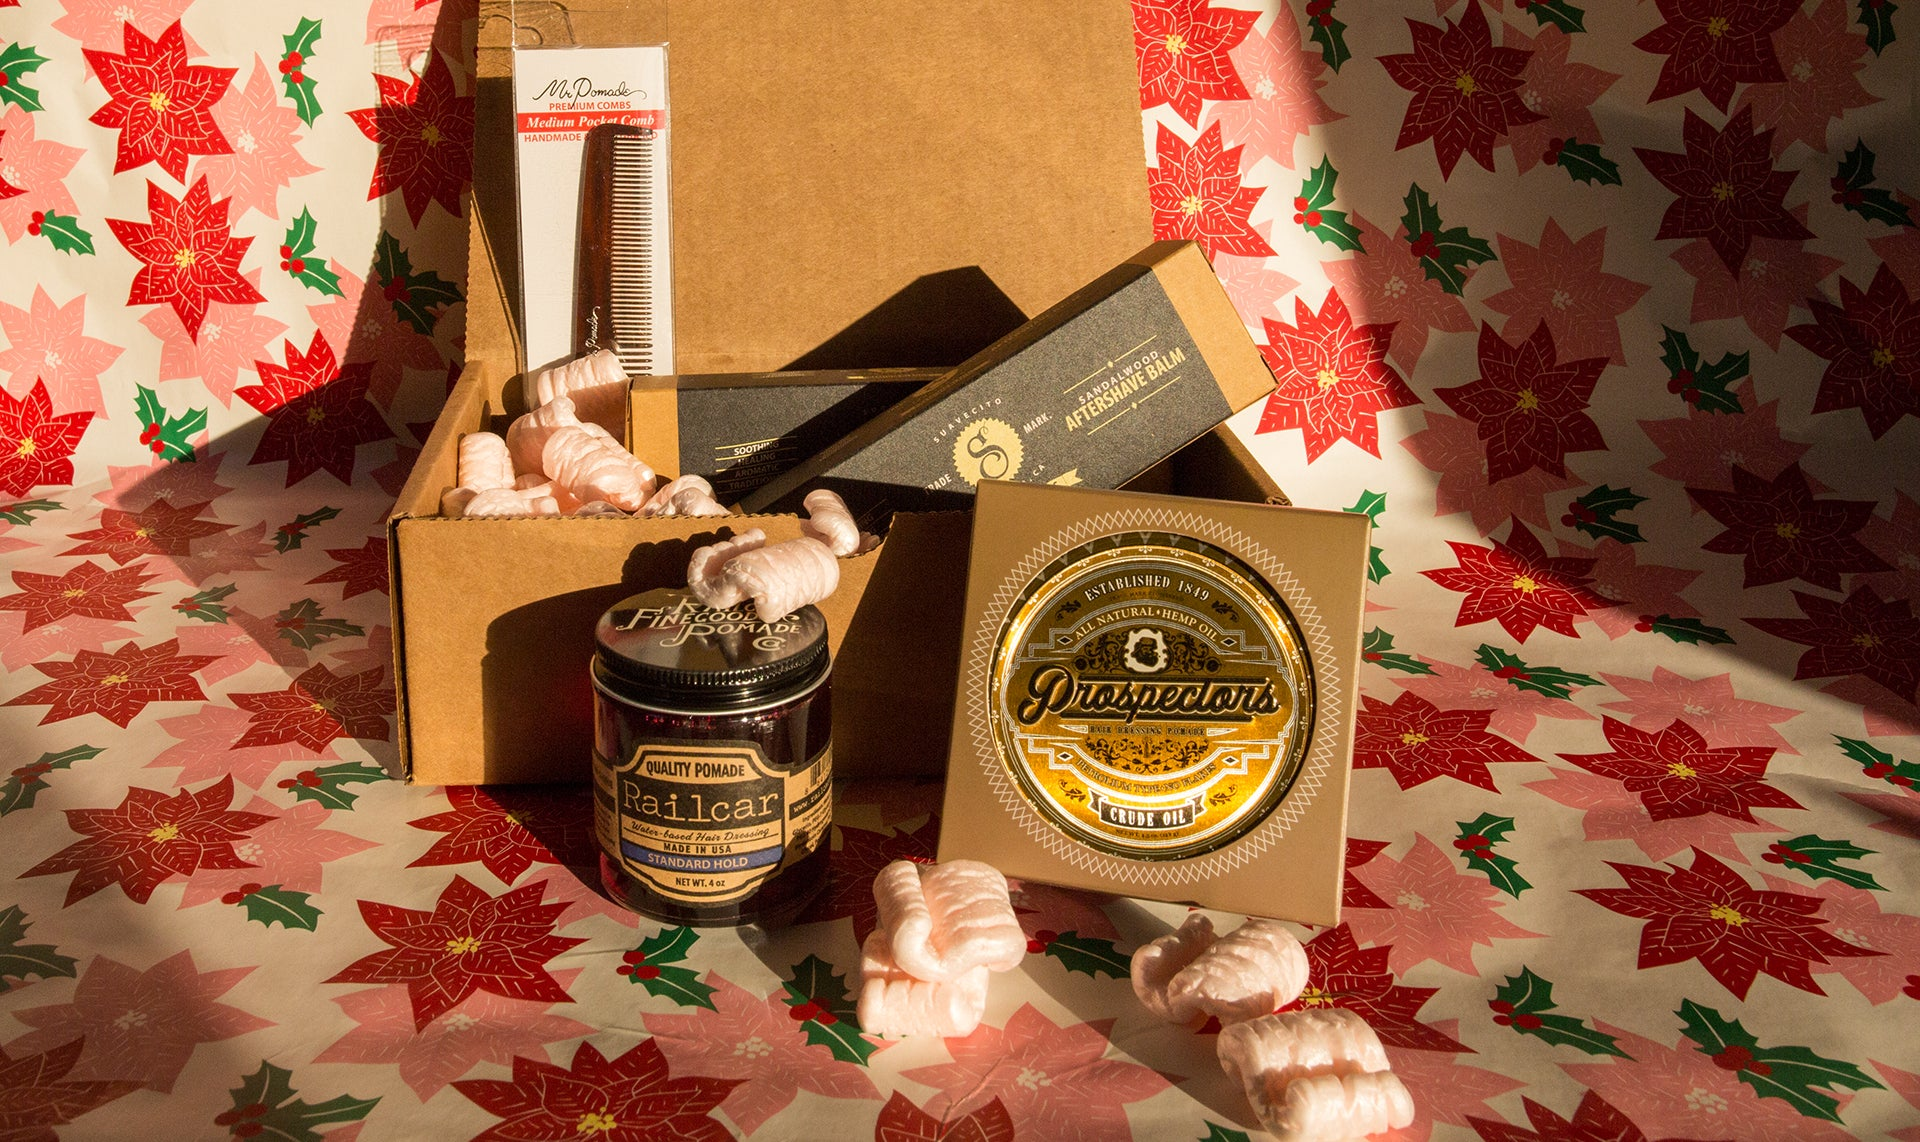 Mr. Pomade Holiday Box Set